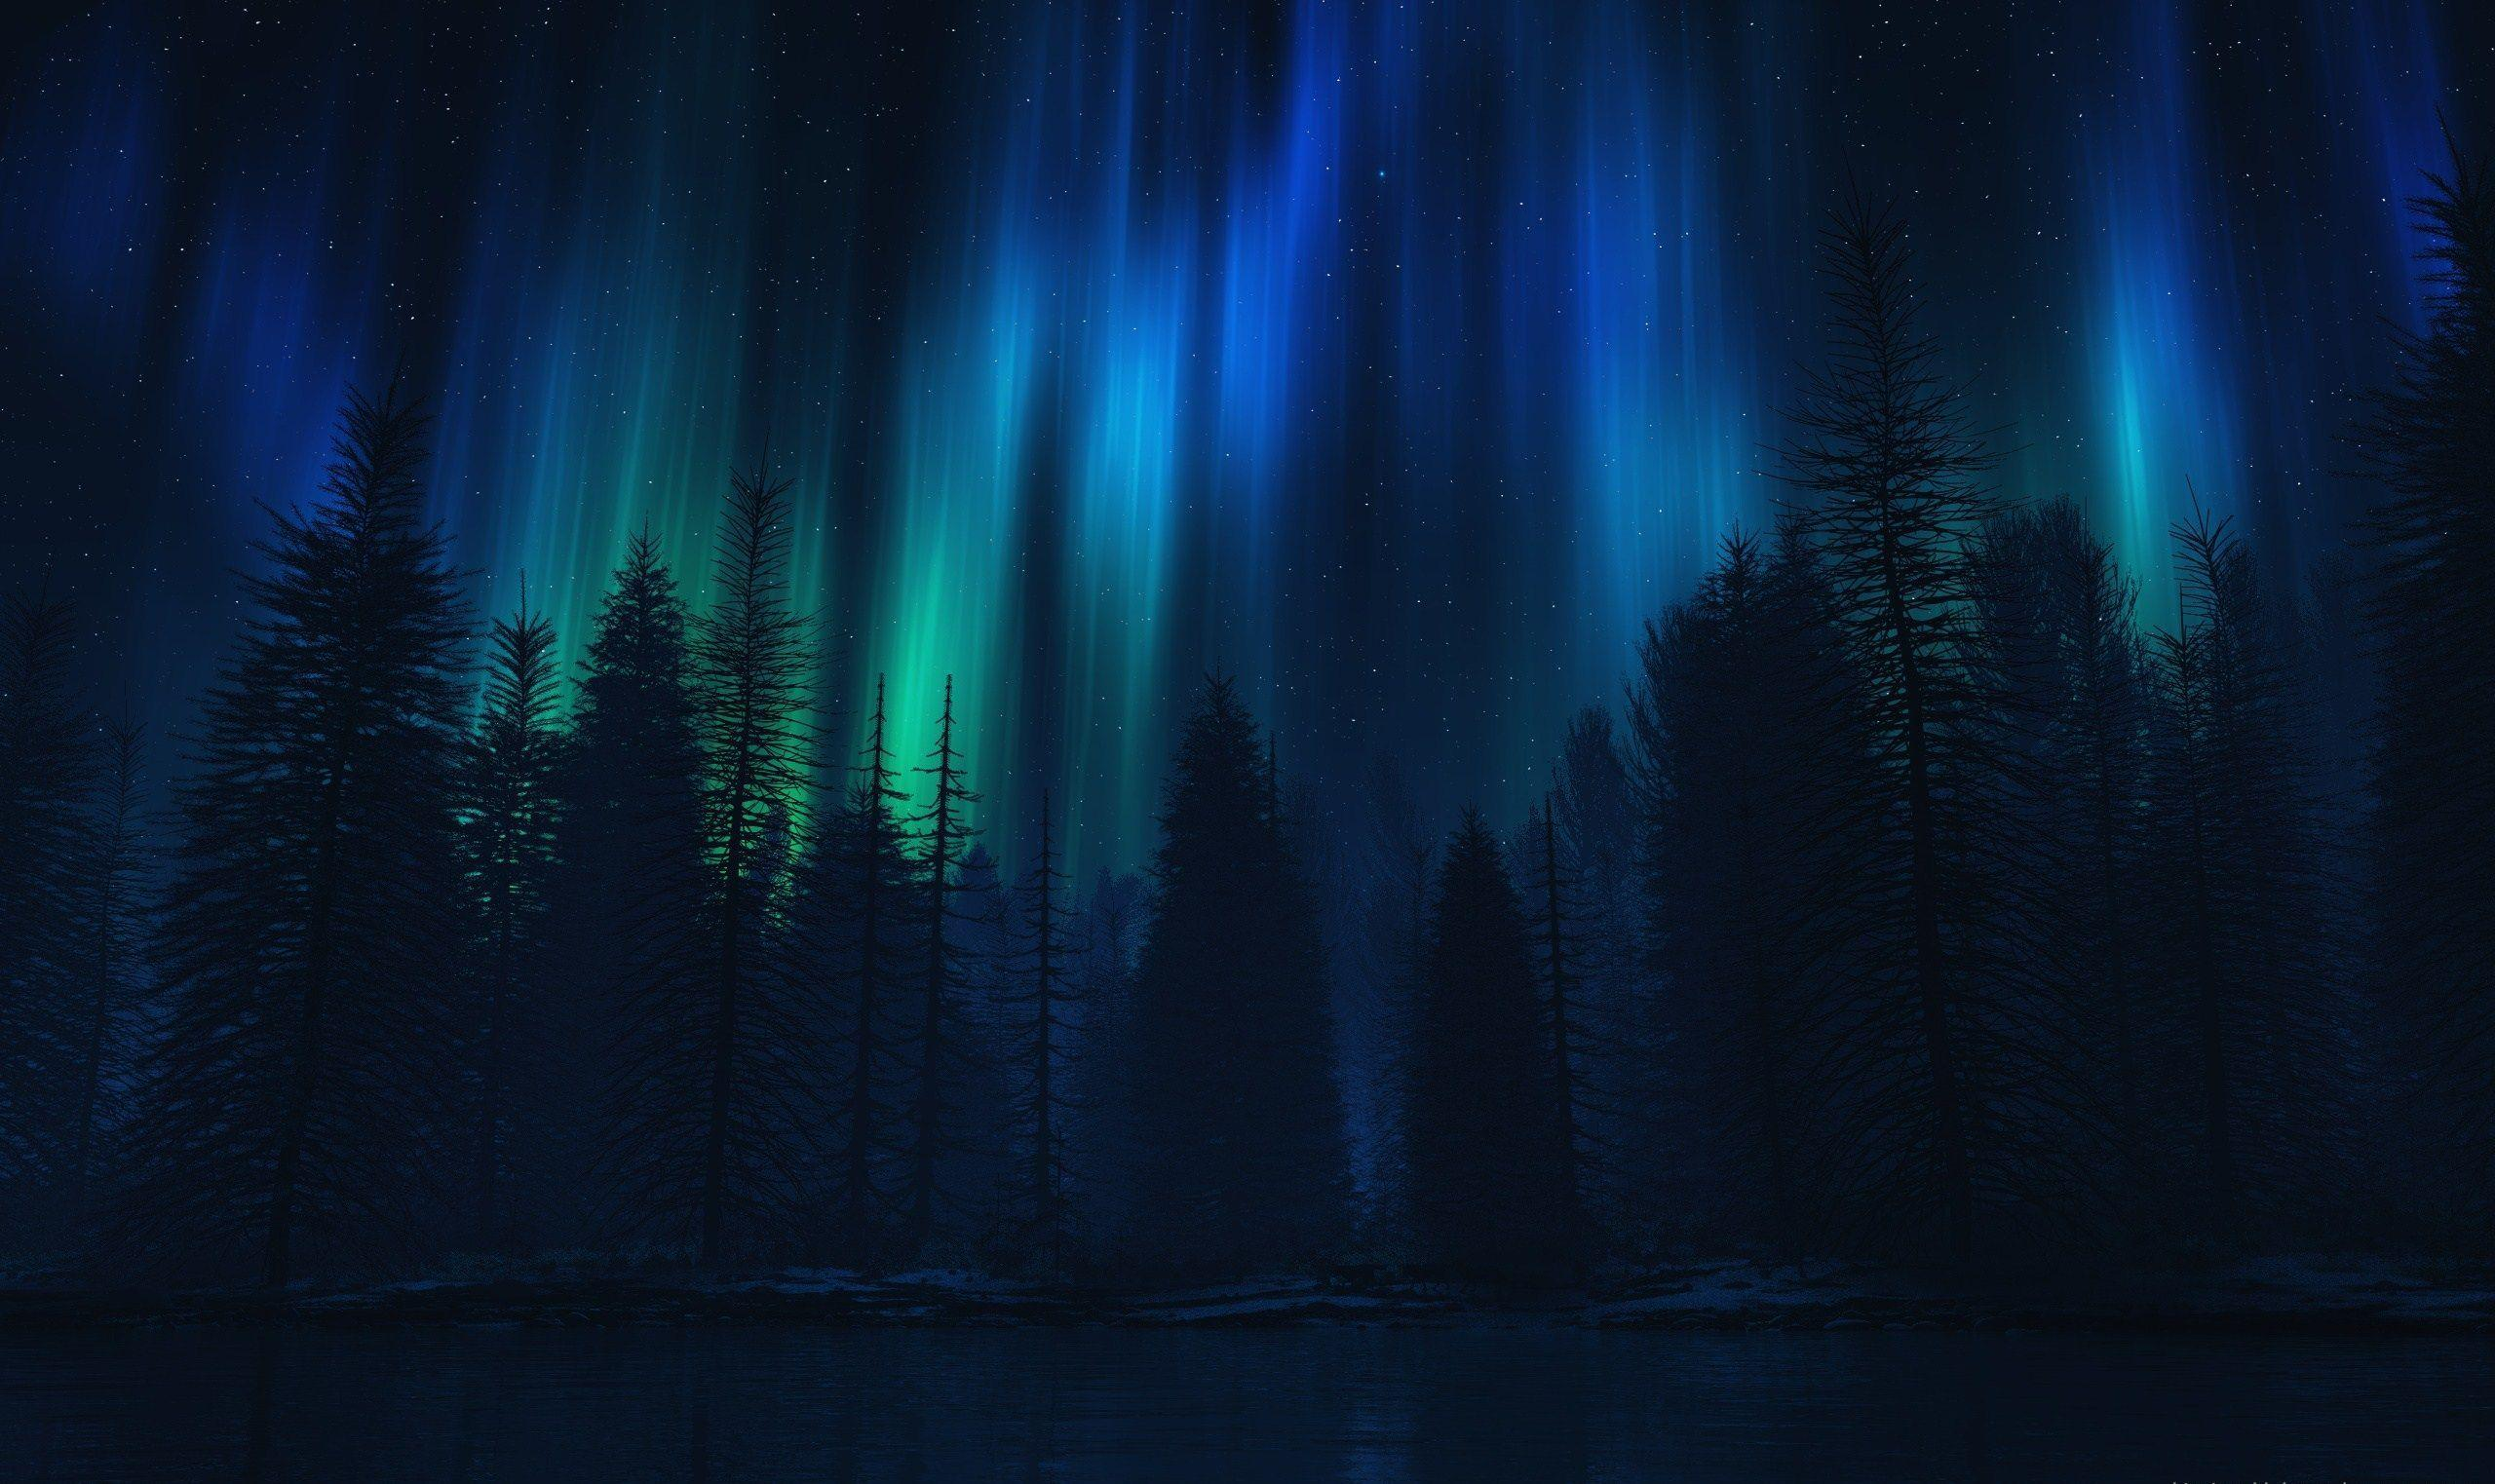 Northern Lights Wallpapers 11295 Image HD Wallpapers